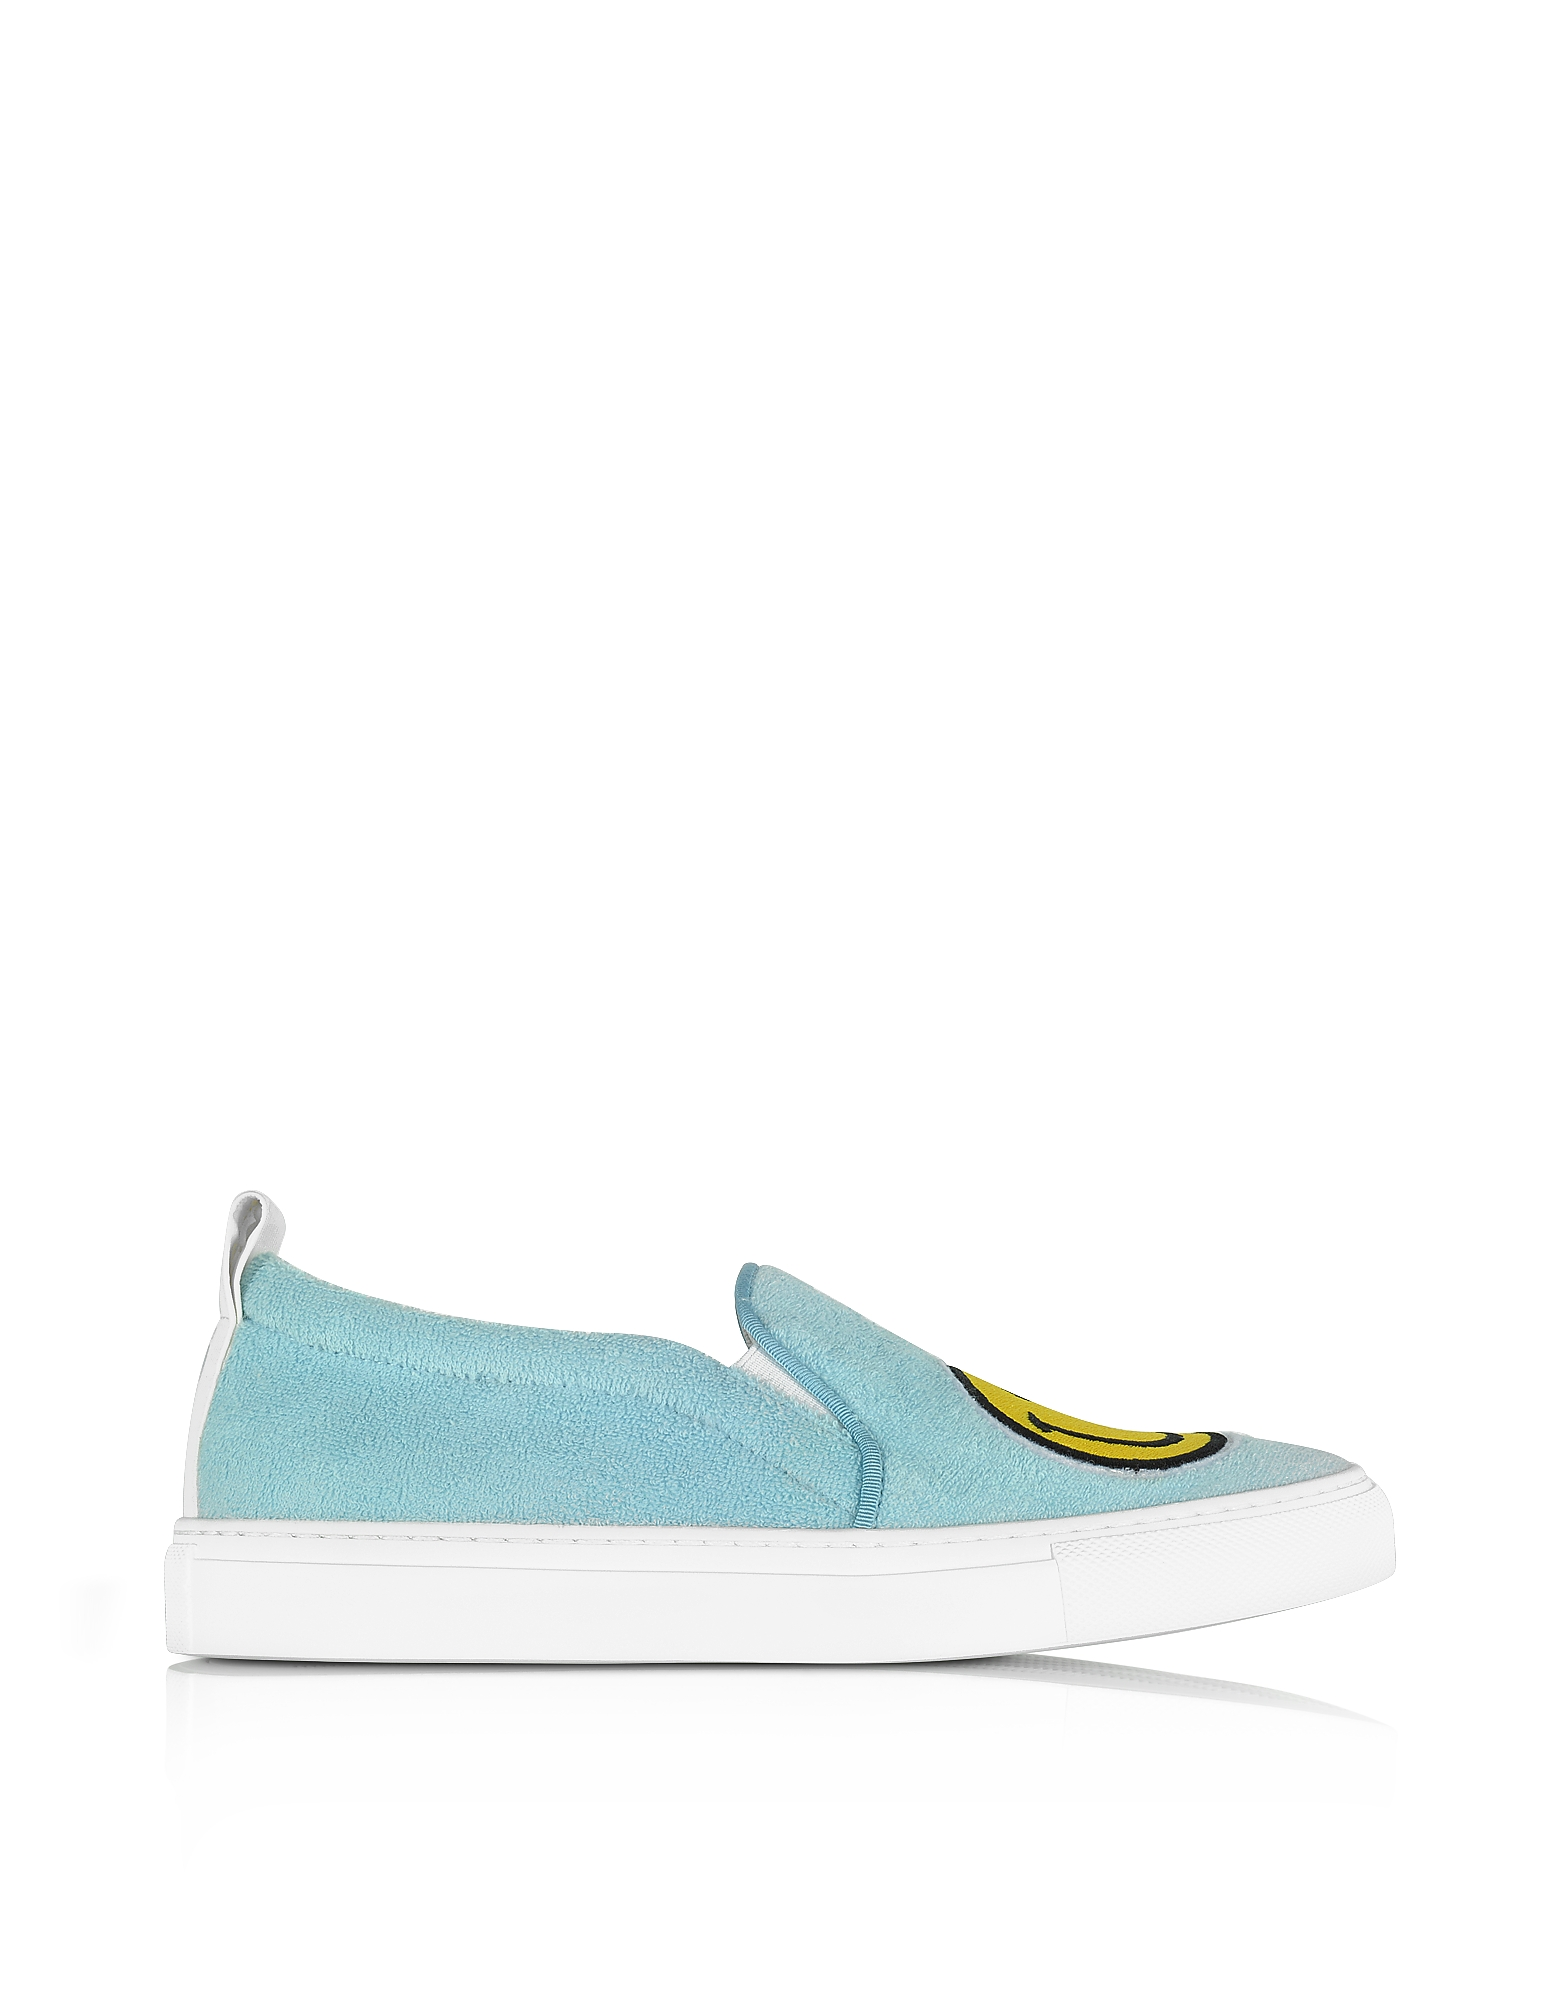 Joshua Sanders Shoes, Light Blue Fleece and Leather Smile Slip on Sneakers